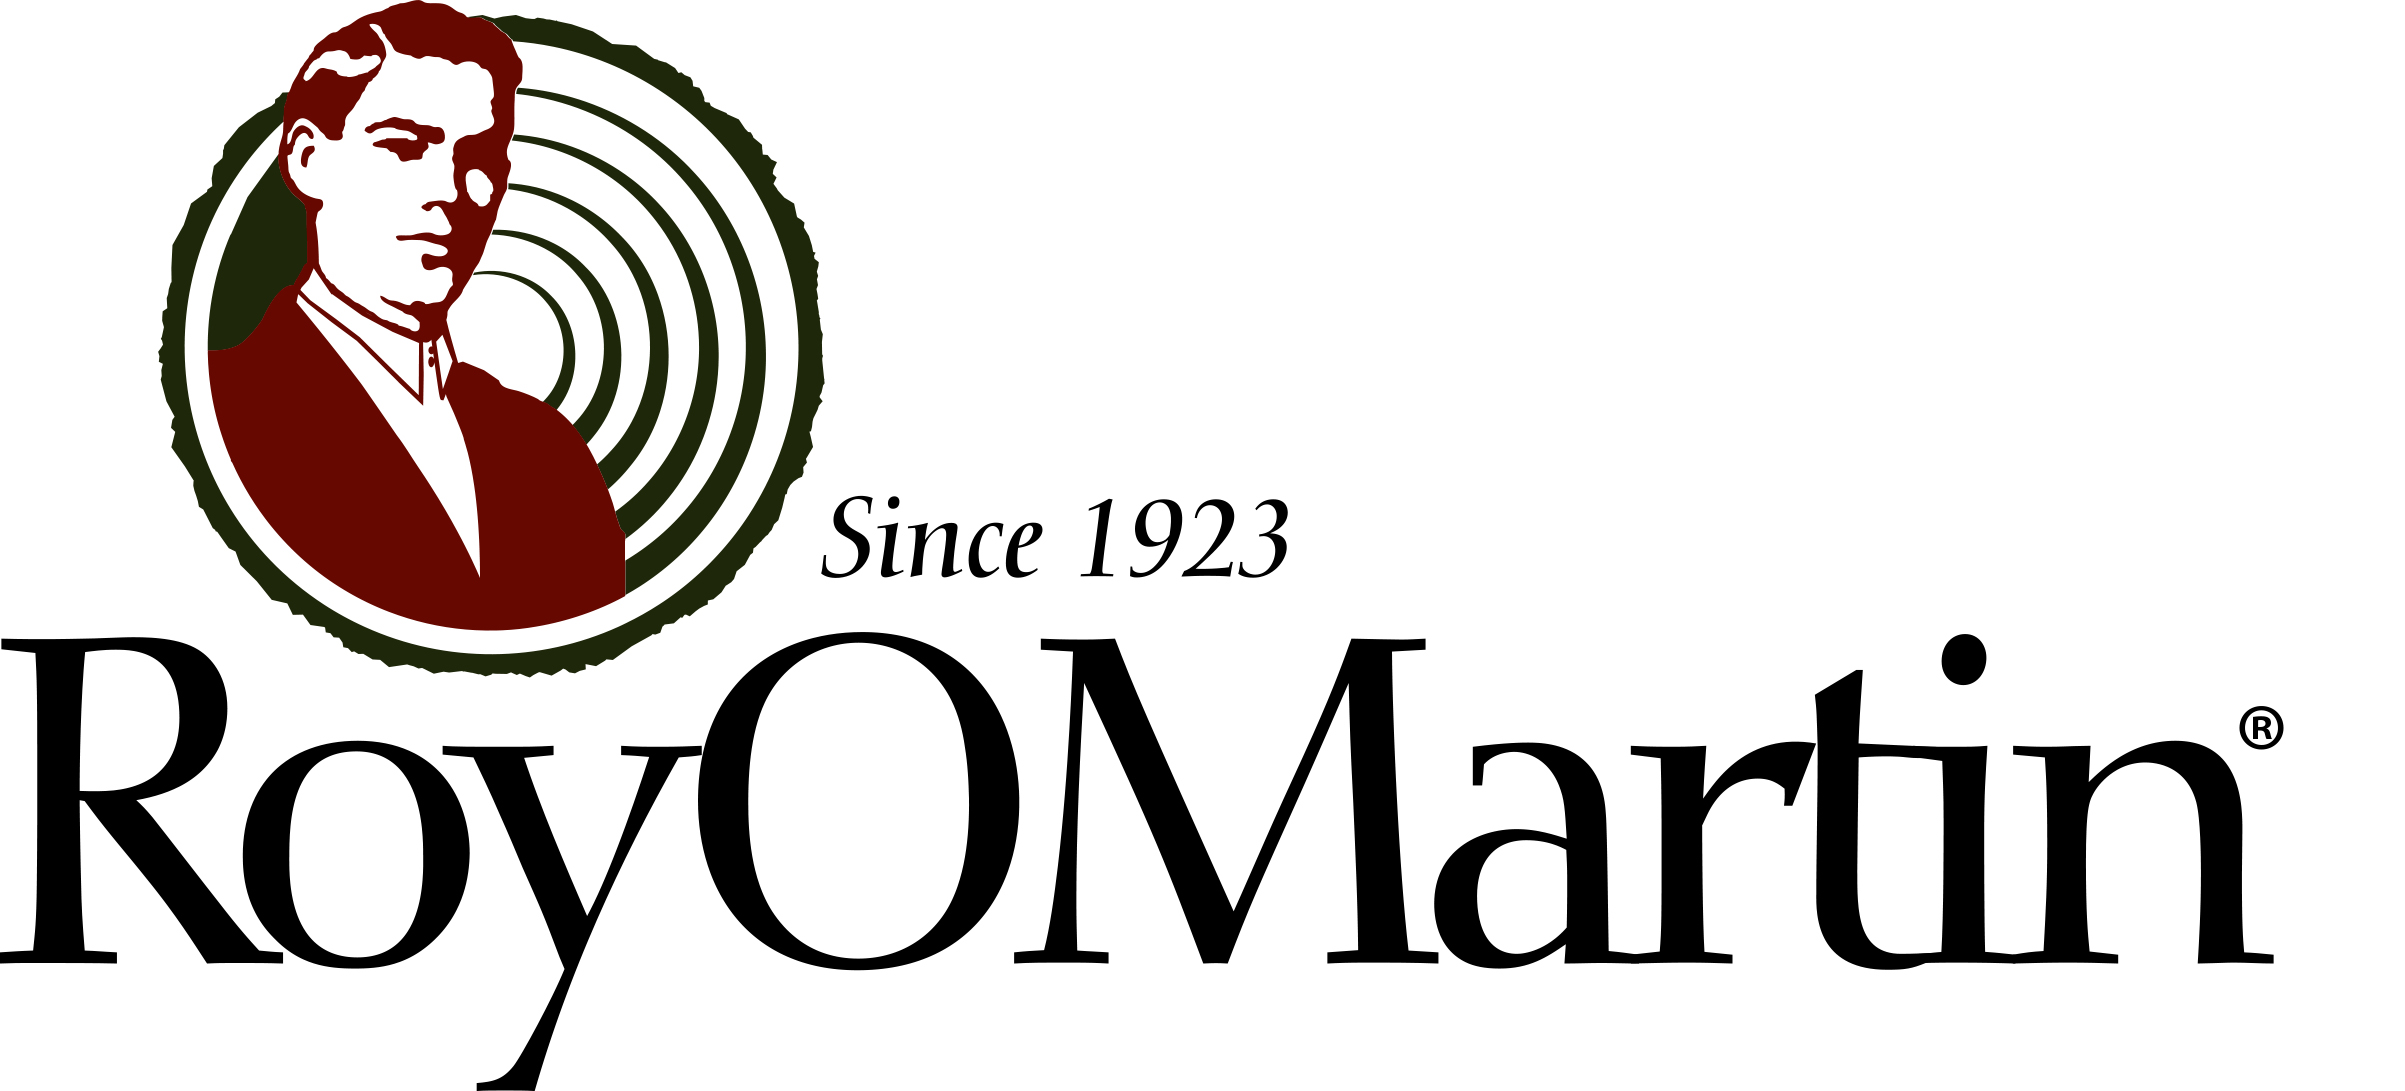 ROM_Master_logo_withregisteredtrademark.eps